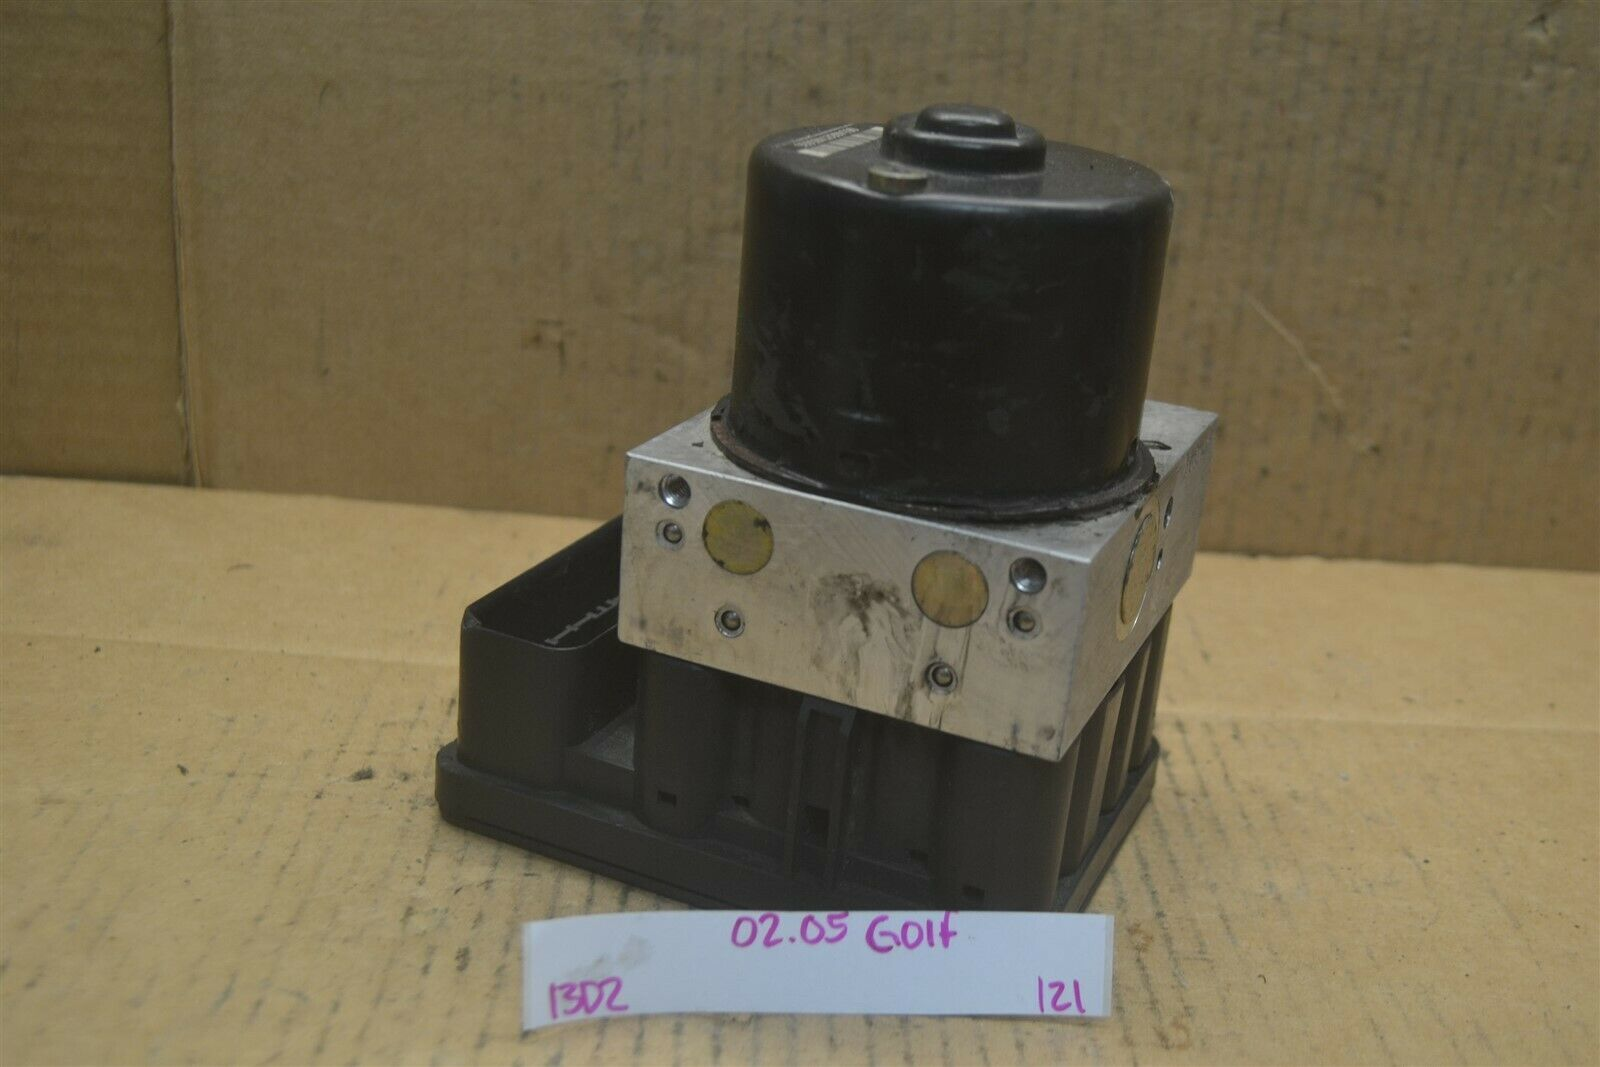 Primary image for 02-05 Volkswagen Golf ABS Pump Control OEM 1C0907379K Module 121-13d2